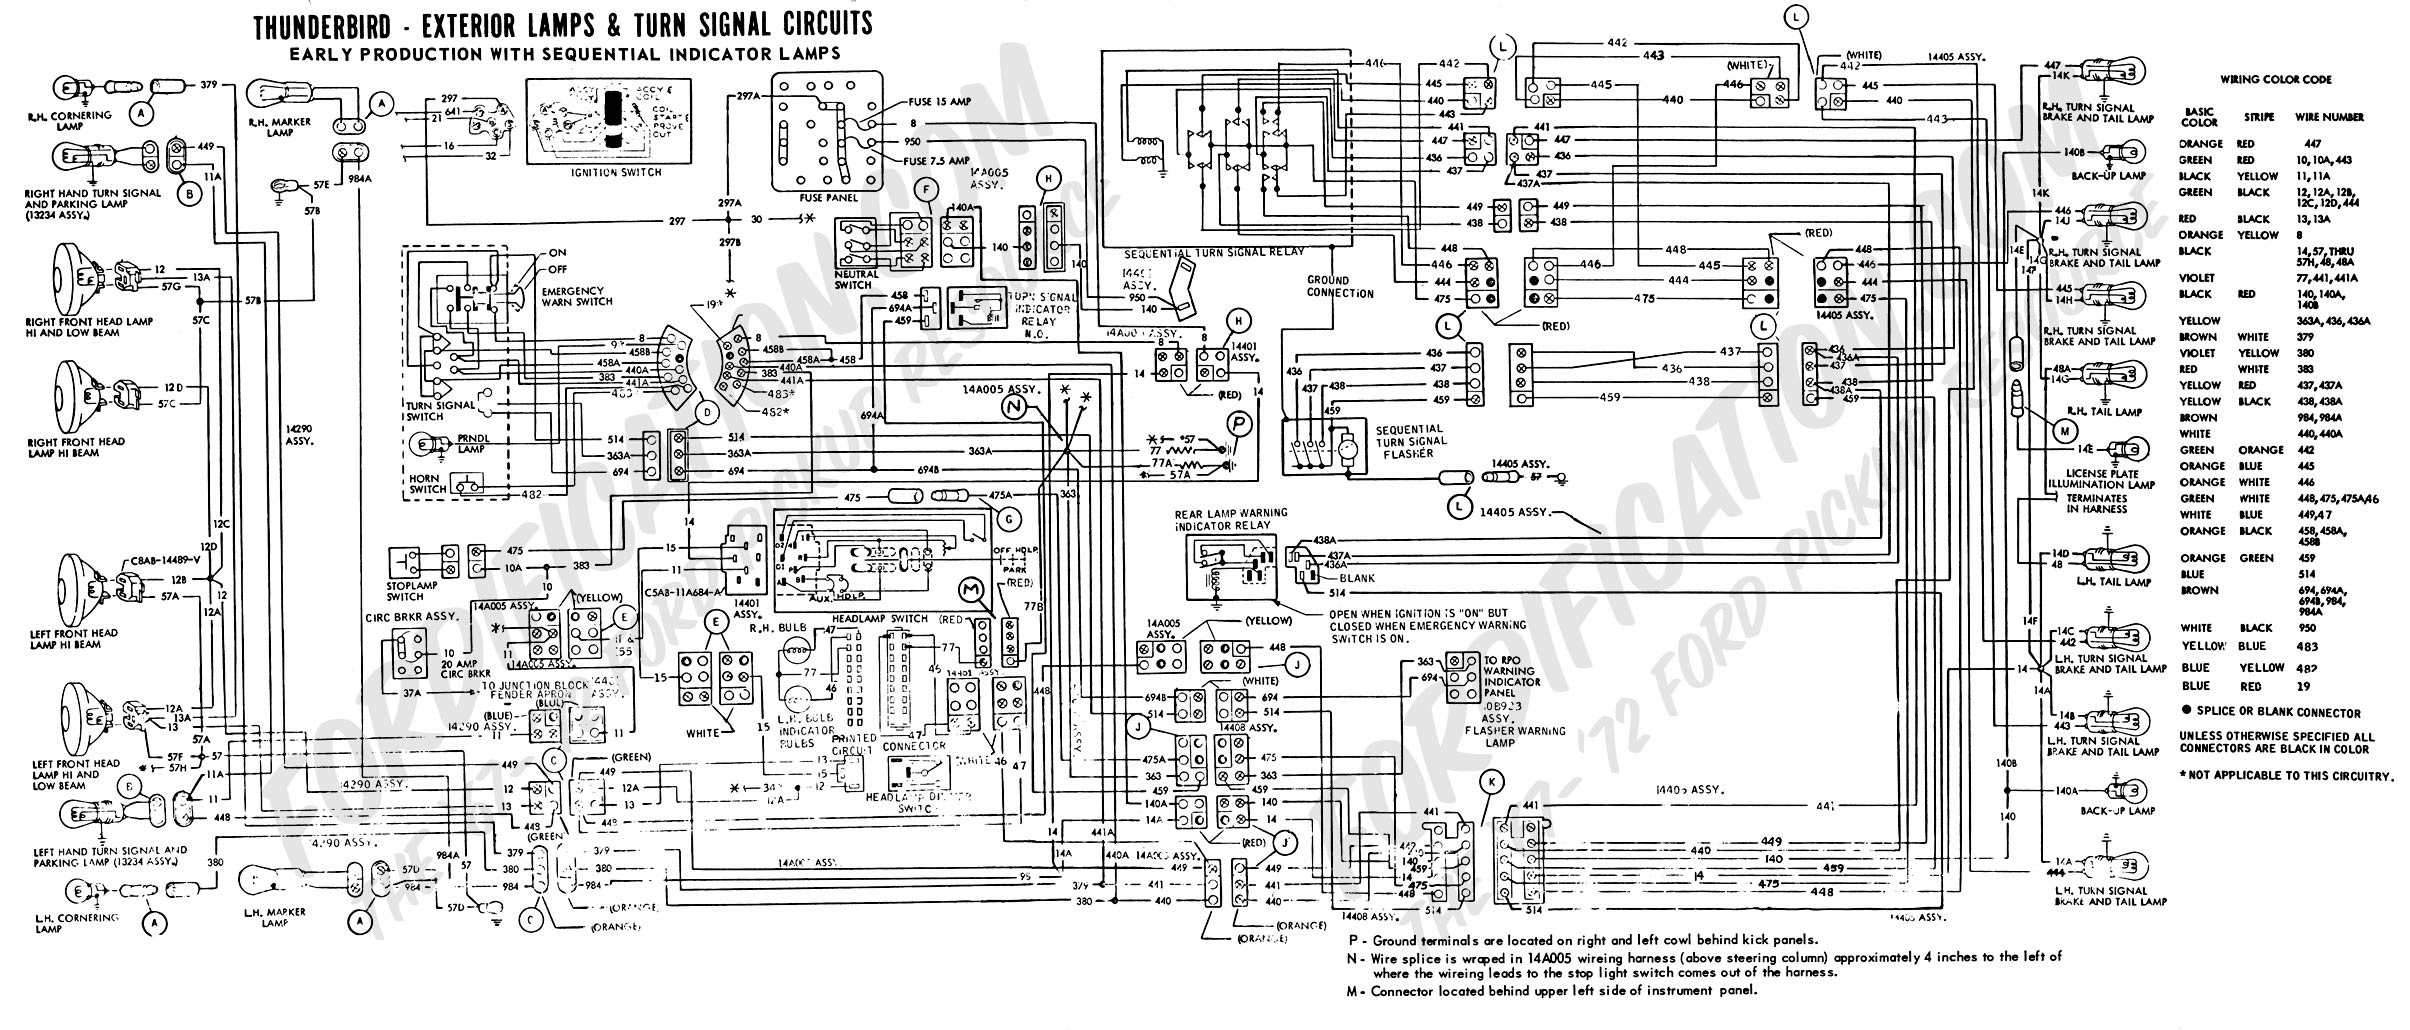 Sterling Wiring Diagram Page additionally Ac besides Tbird Chargingschematic together with Lincoln Except Continental Windows Wiring Diagram together with Ford Thunderbird Vent Window. on 1966 ford thunderbird power window wiring diagram